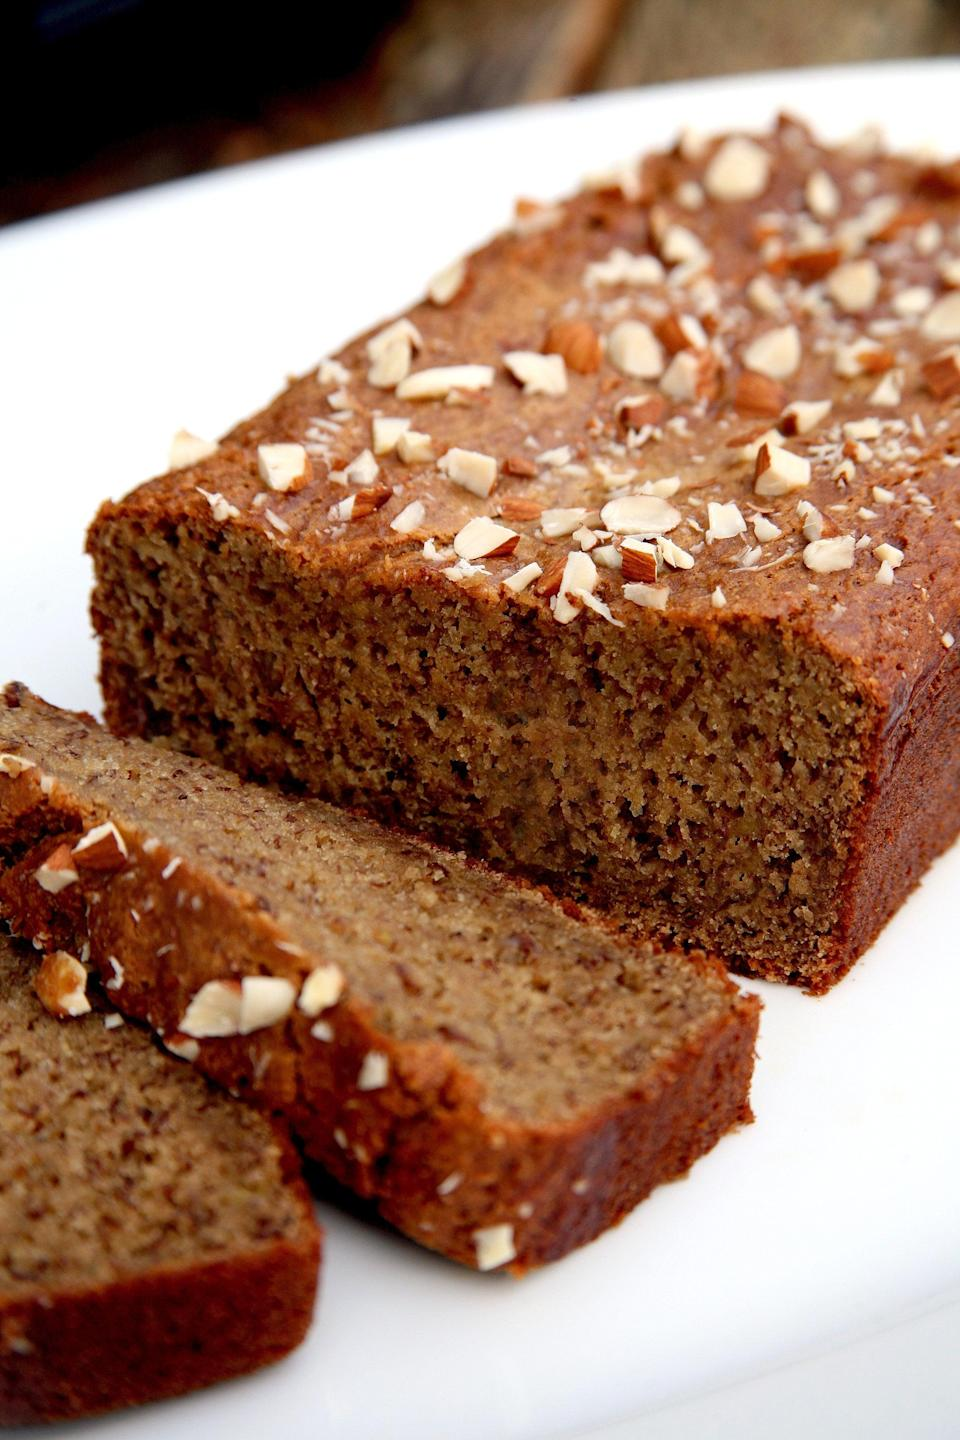 "<p>Sweet and moist on the inside and crispy on the outside, this banana bread tastes delicious on its own - but it's even more amazing smeared with nut butter and a sprinkle of cinnamon.</p> <p><strong>Calories:</strong> 188 per slice<br> <strong>Protein:</strong> 8.2 grams</p> <p><strong>Get the recipe:</strong> <a href=""https://www.popsugar.com/fitness/Protein-Banana-Bread-37091173"" class=""link rapid-noclick-resp"" rel=""nofollow noopener"" target=""_blank"" data-ylk=""slk:banana bread"">banana bread</a> </p>"